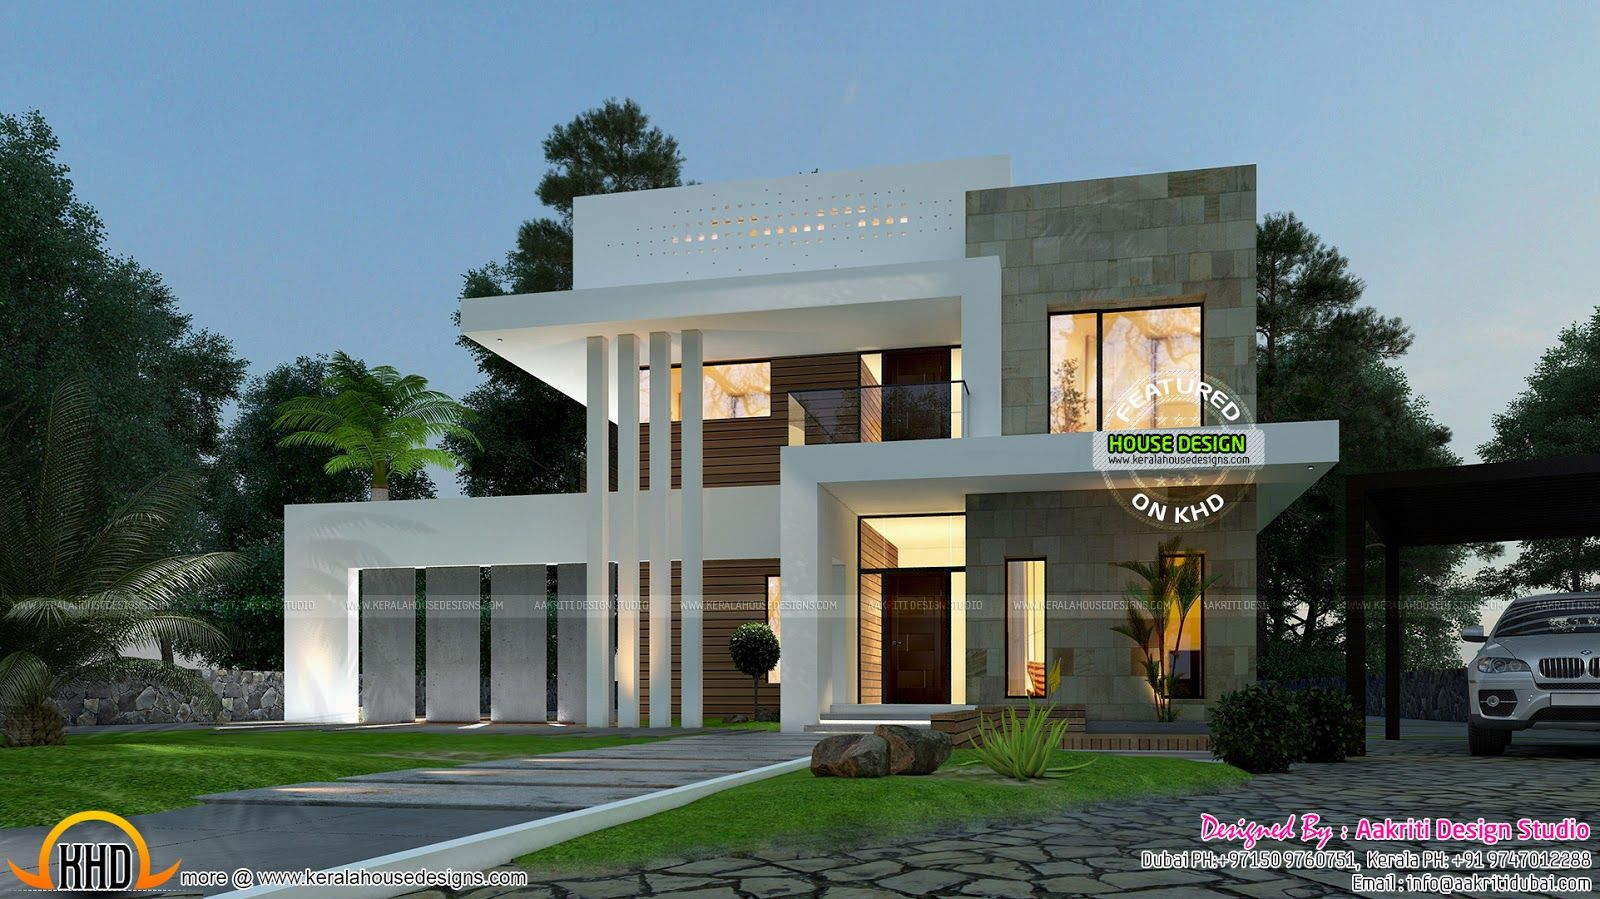 3 Bedroom Luxurious, Contemporary Style House Plan In 4035 Square Feet By  Aakriti Design Studio, Dubai U0026 Kerala